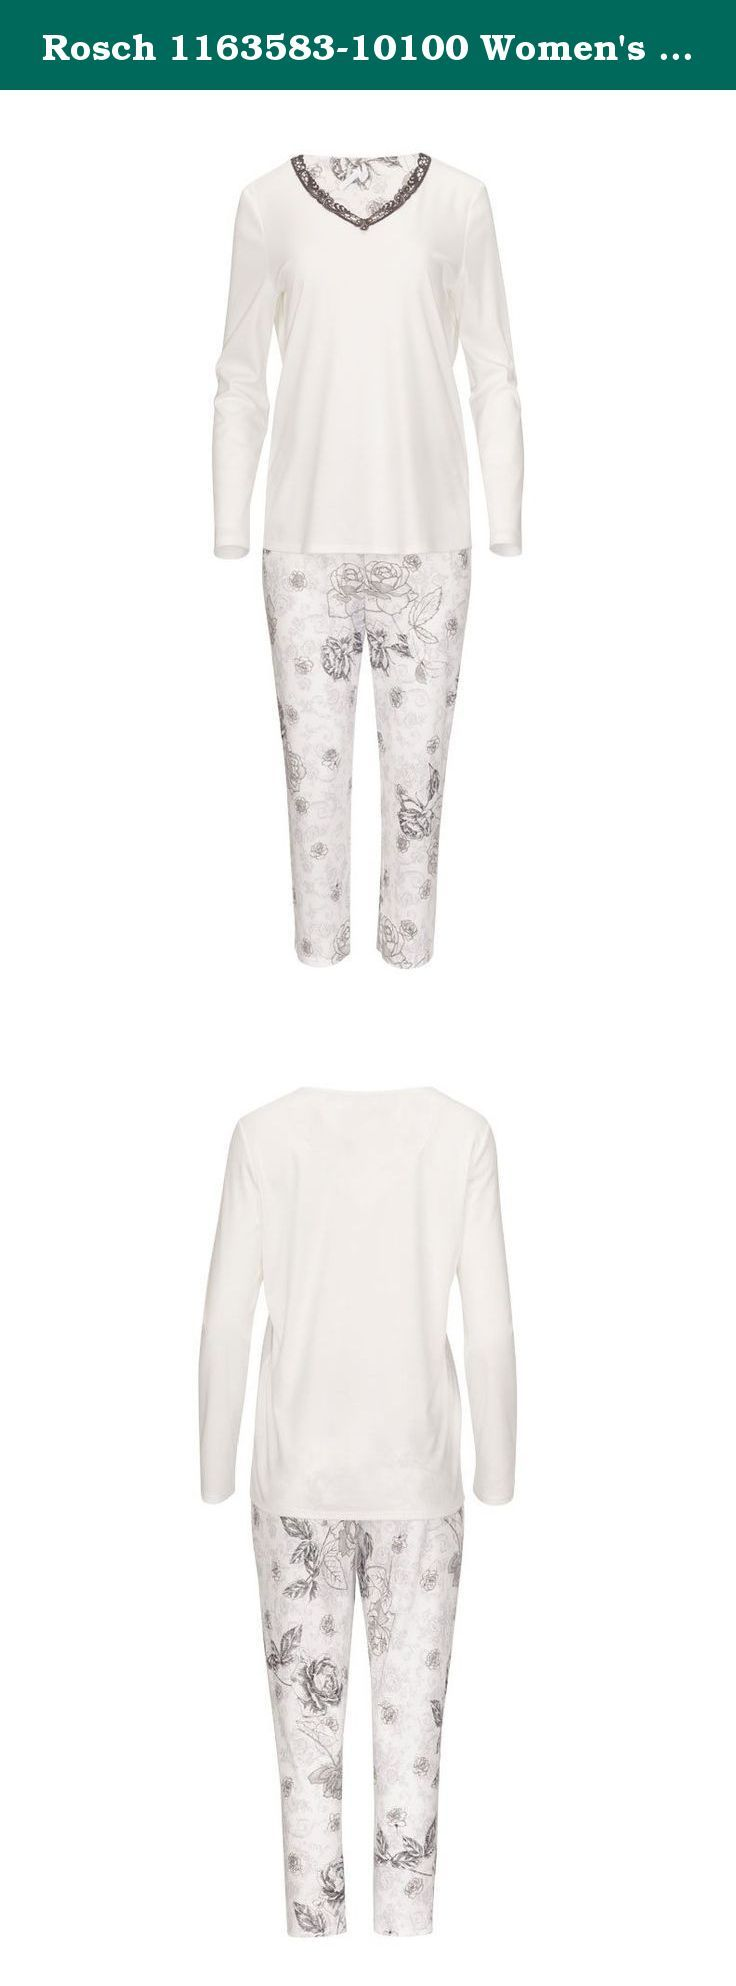 Rosch 1163583-10100 Women's White and Grey Floral Long Sleeve Cotton Pyjamas PJs 1163583-10100 12 US/42 EU. Beautiful white cotton pyjama set, featuring grey floral design on the bottoms, and pretty lace edging on neckline. Treat yourself today.